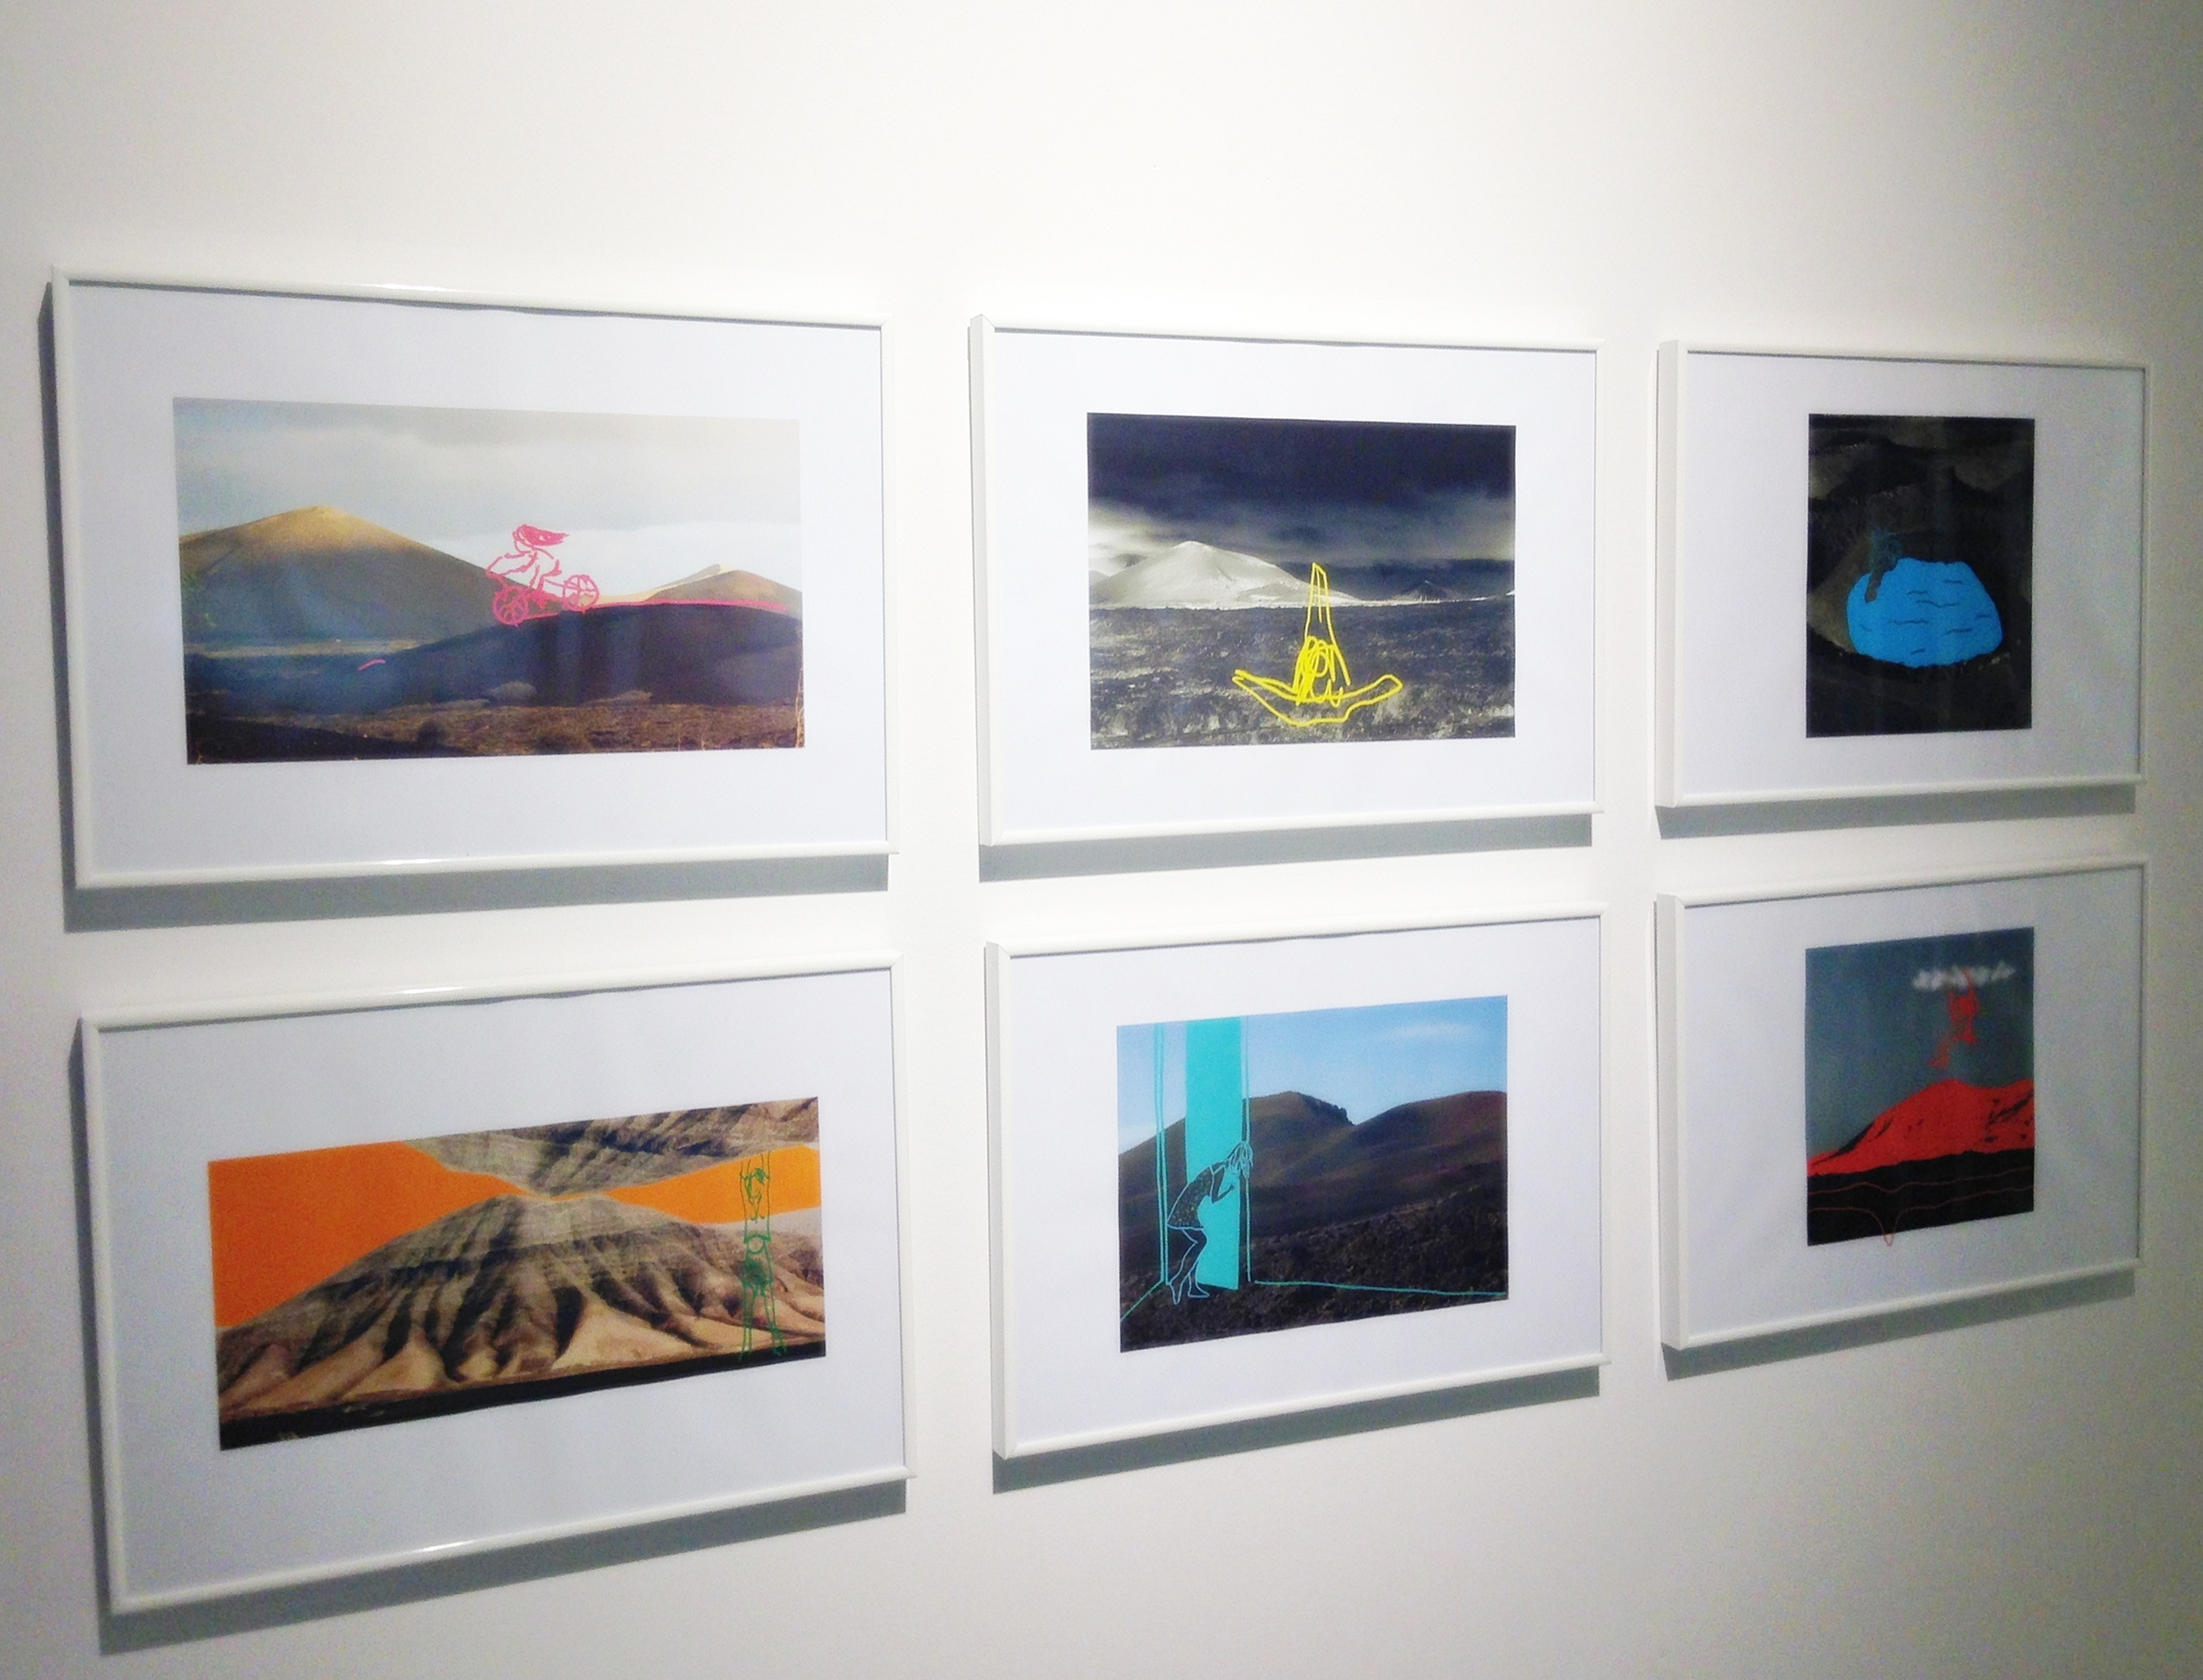 Another series of small framed photographs by Monica Sanchez-Robles